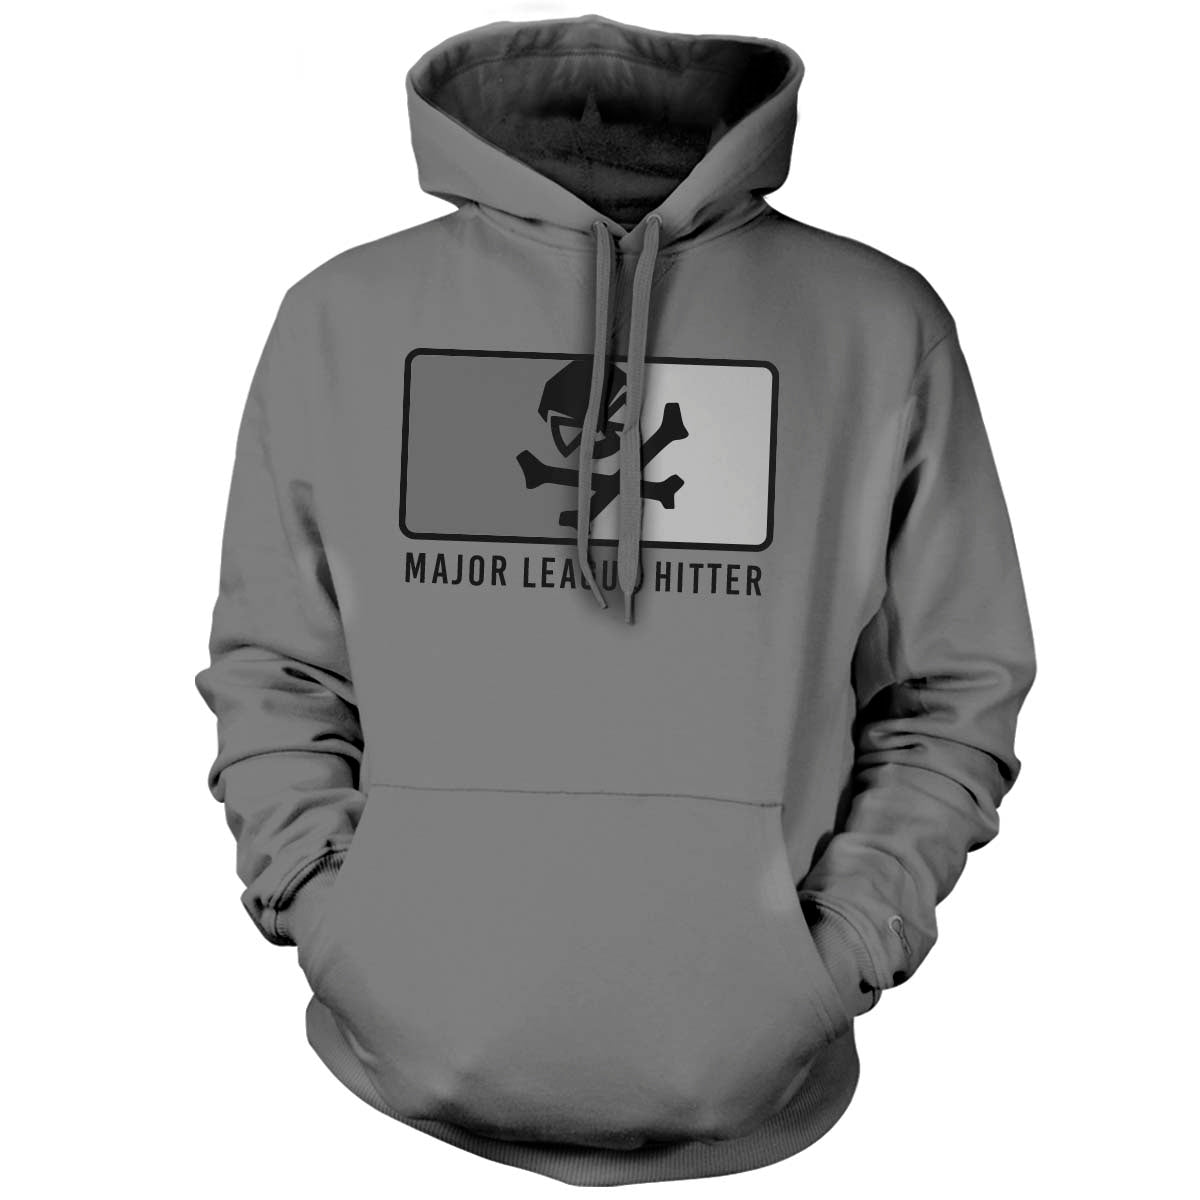 Major League Hitter - Hoodie - Grey/Subdued - T-Shirts - Pipe Hitters Union